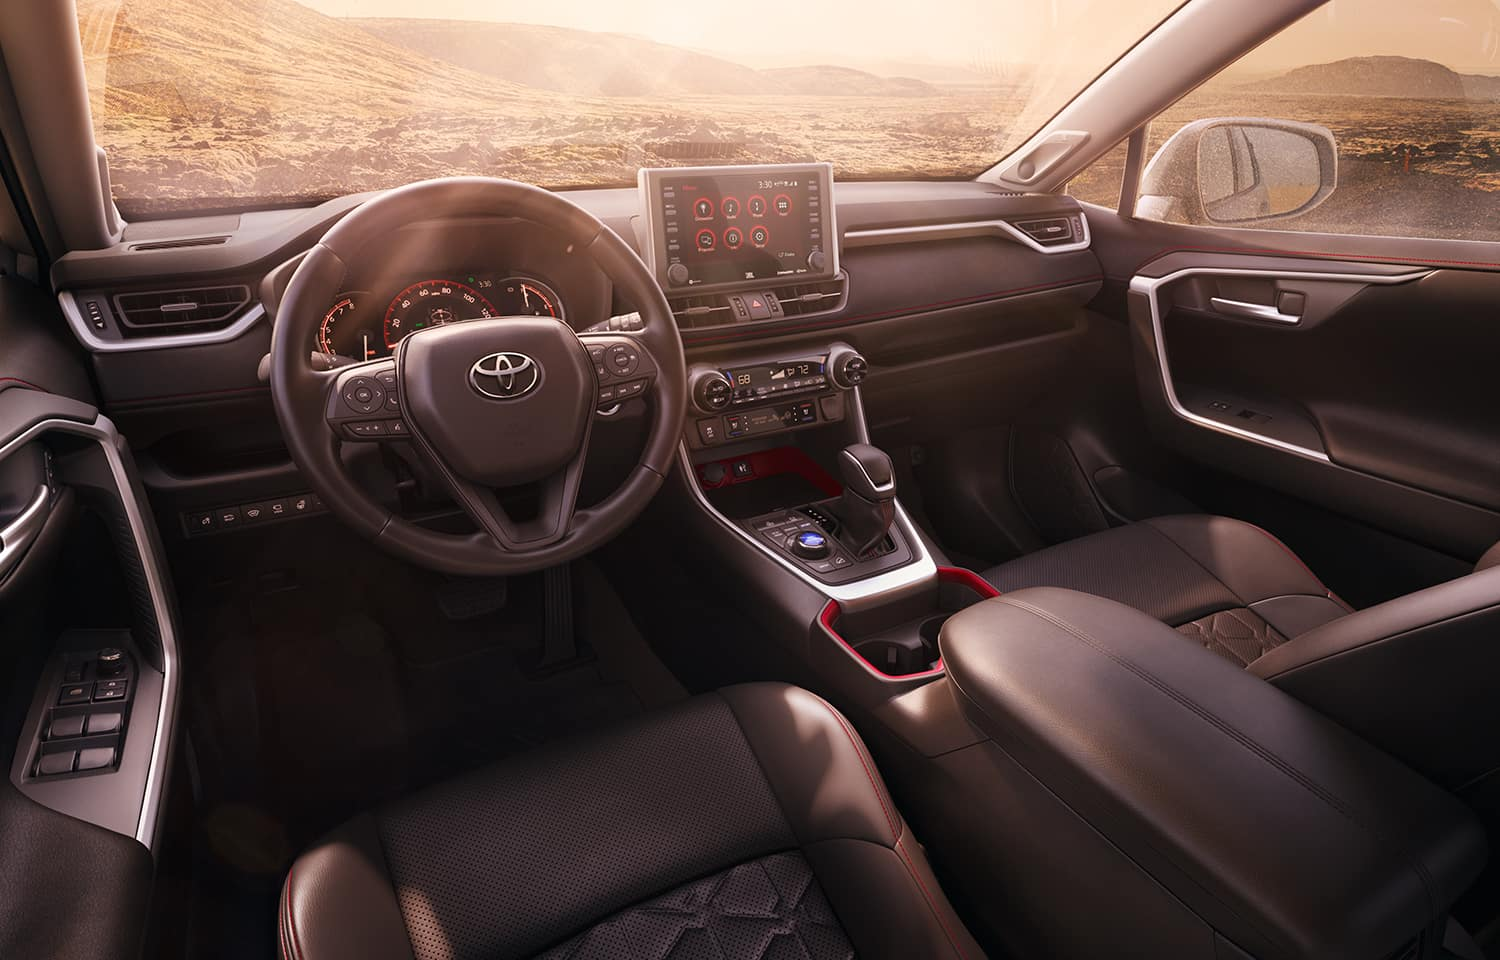 Performance features of the 2020 Toyota RAV4 at Hanover Toyota | The dashboard of the 2020 RAV4